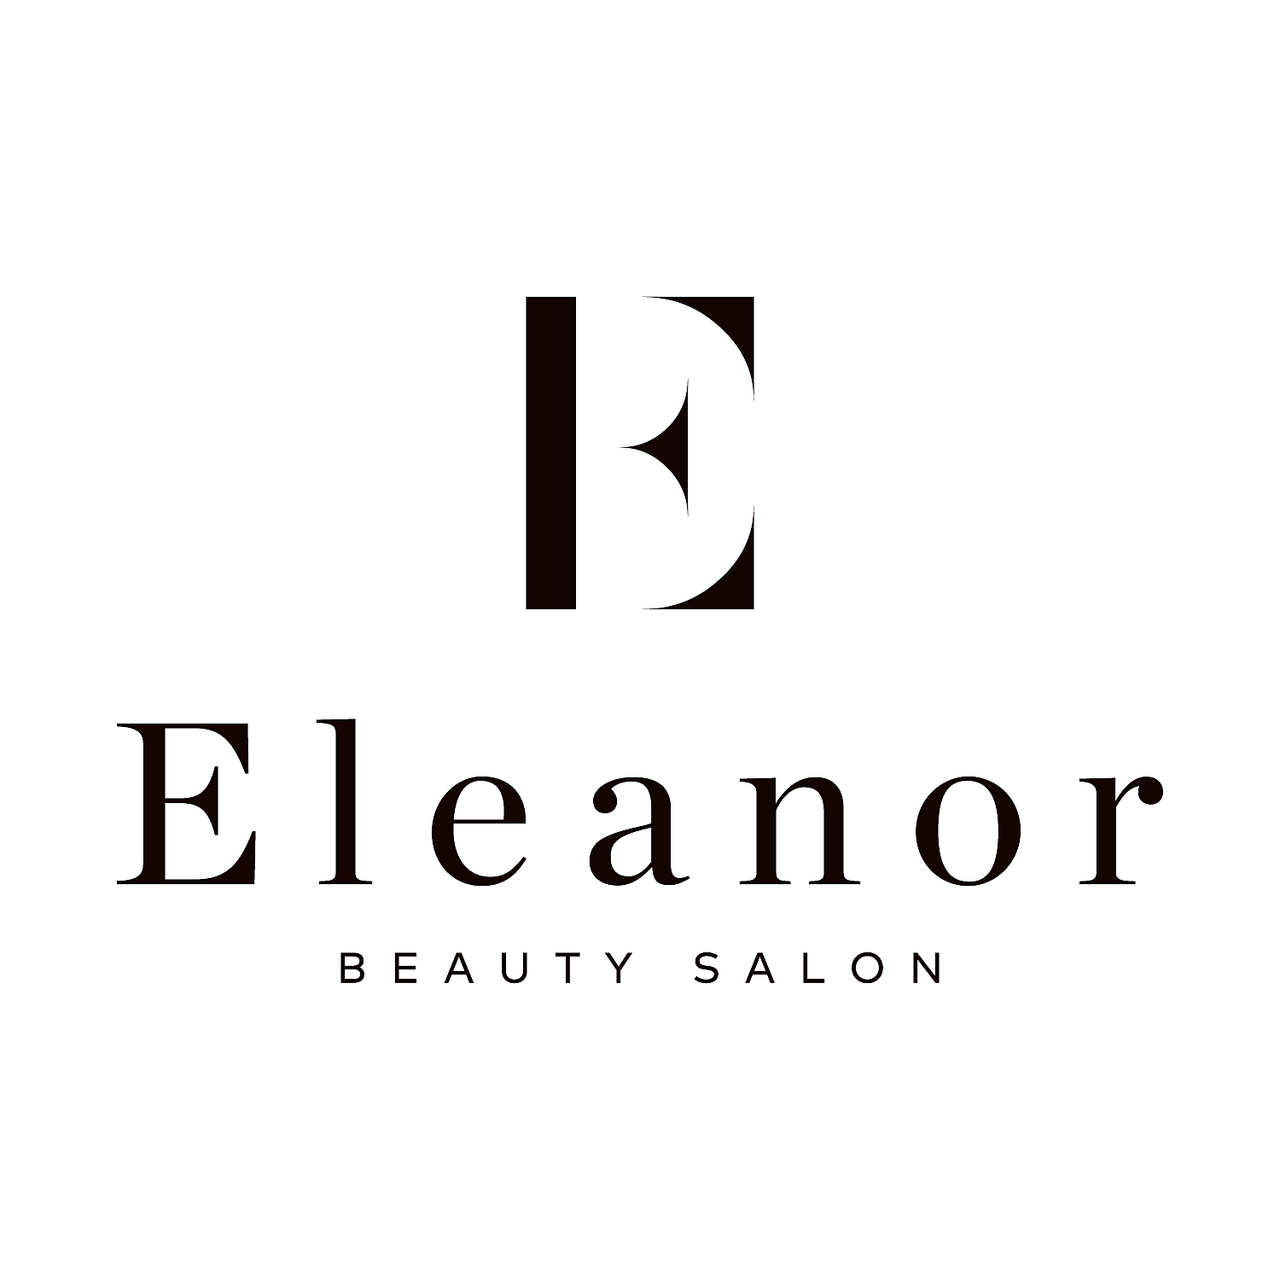 BEAUTY SALON Eleanor